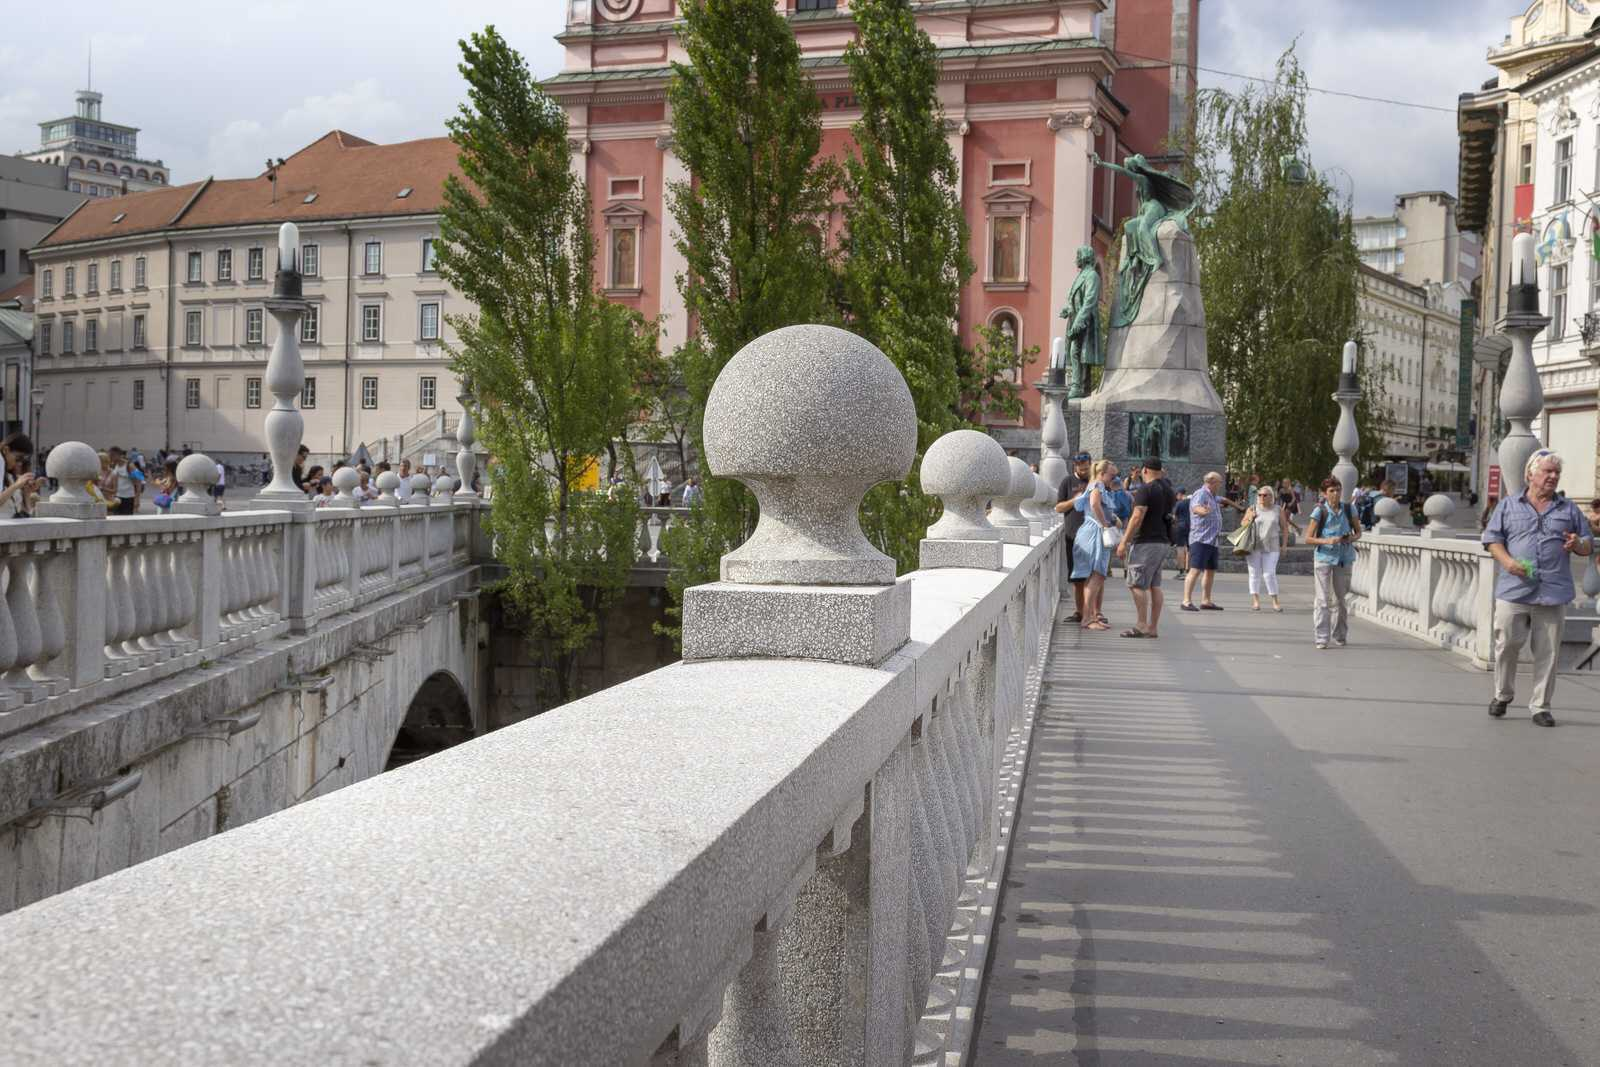 Ljubljana city center - Tripple bridge next to Prešeren square.